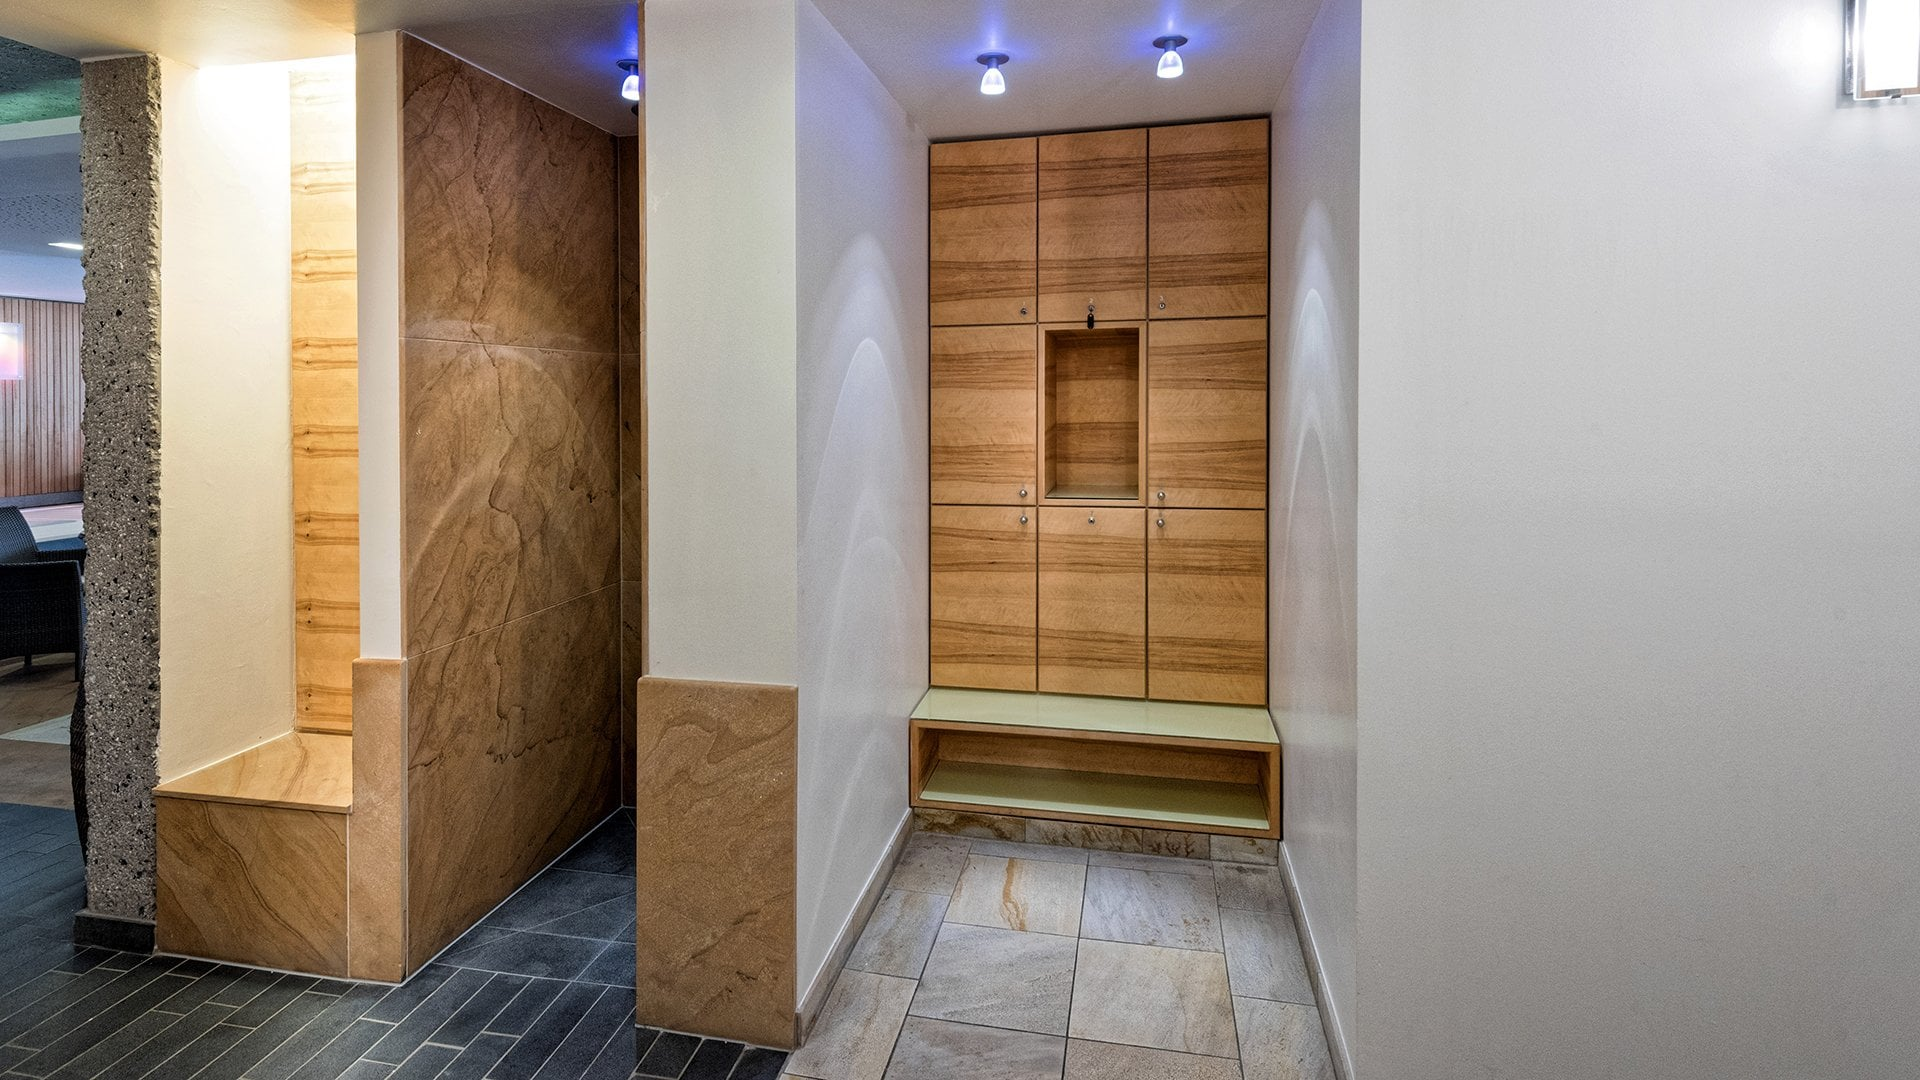 spa vital sauna relax hotel andy jerzens. Black Bedroom Furniture Sets. Home Design Ideas